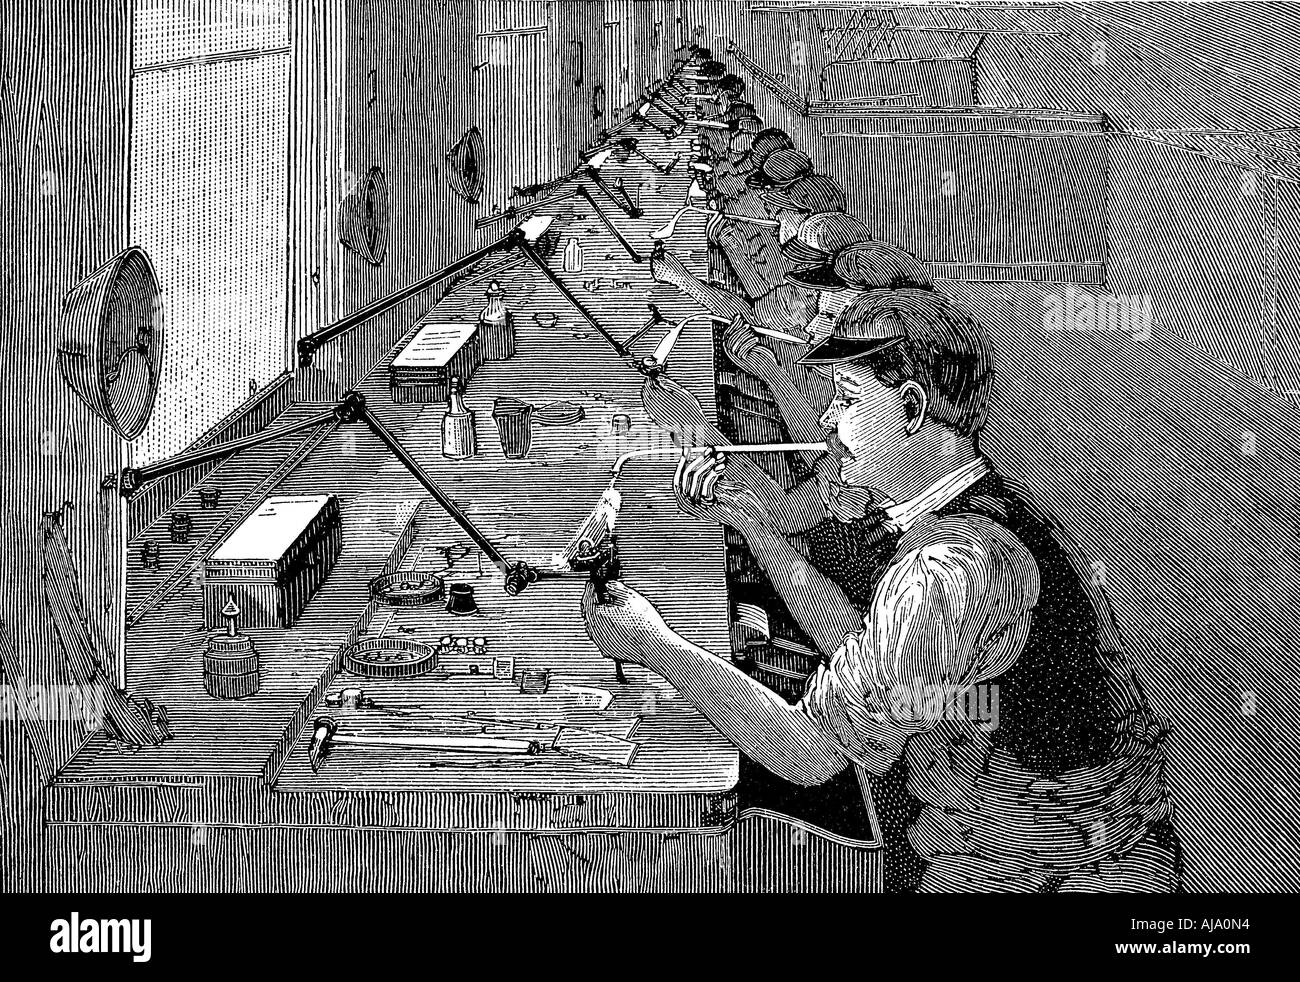 Soldering bicycle parts in an American factory c1900  - Stock Image